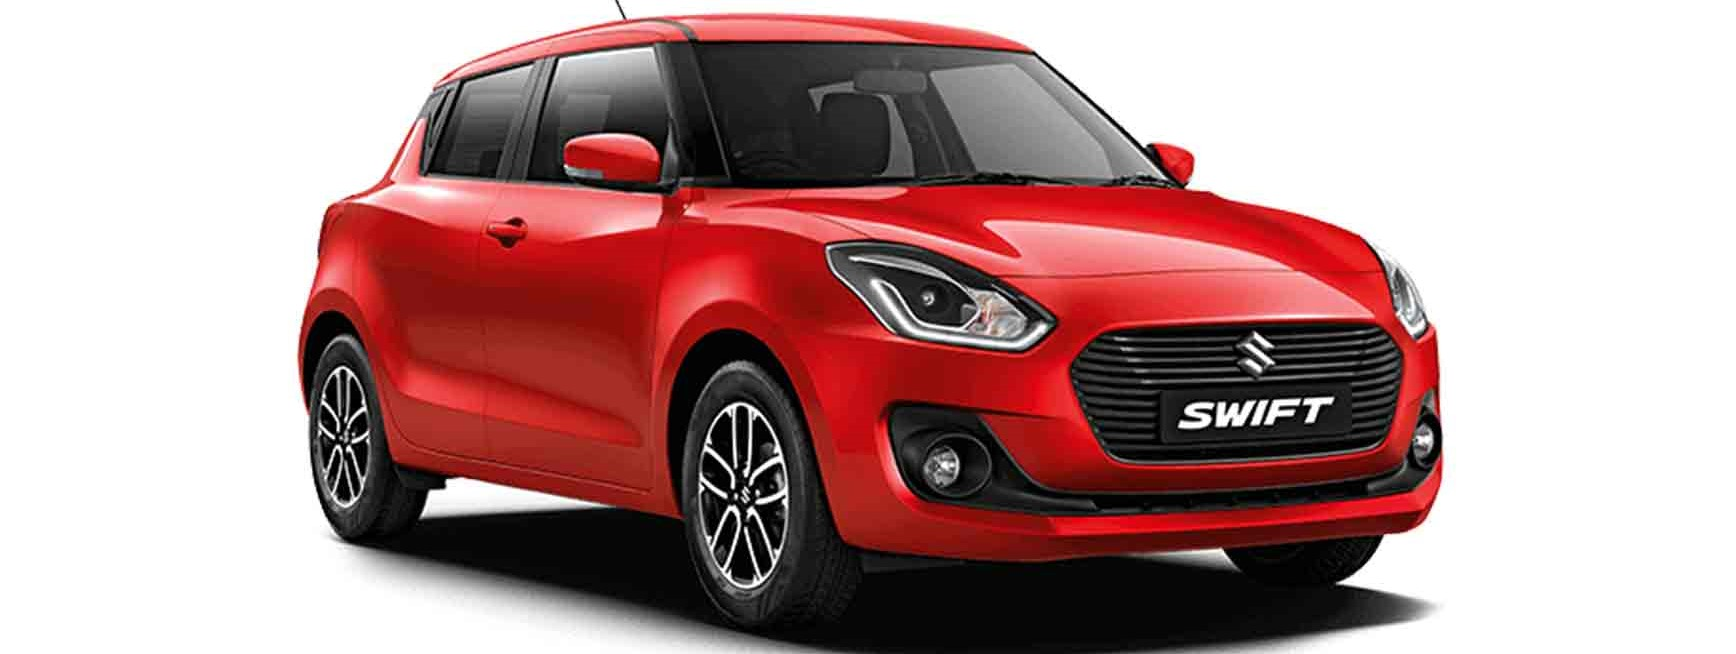 maruti-suzuki-swift-value-for-money-automatic